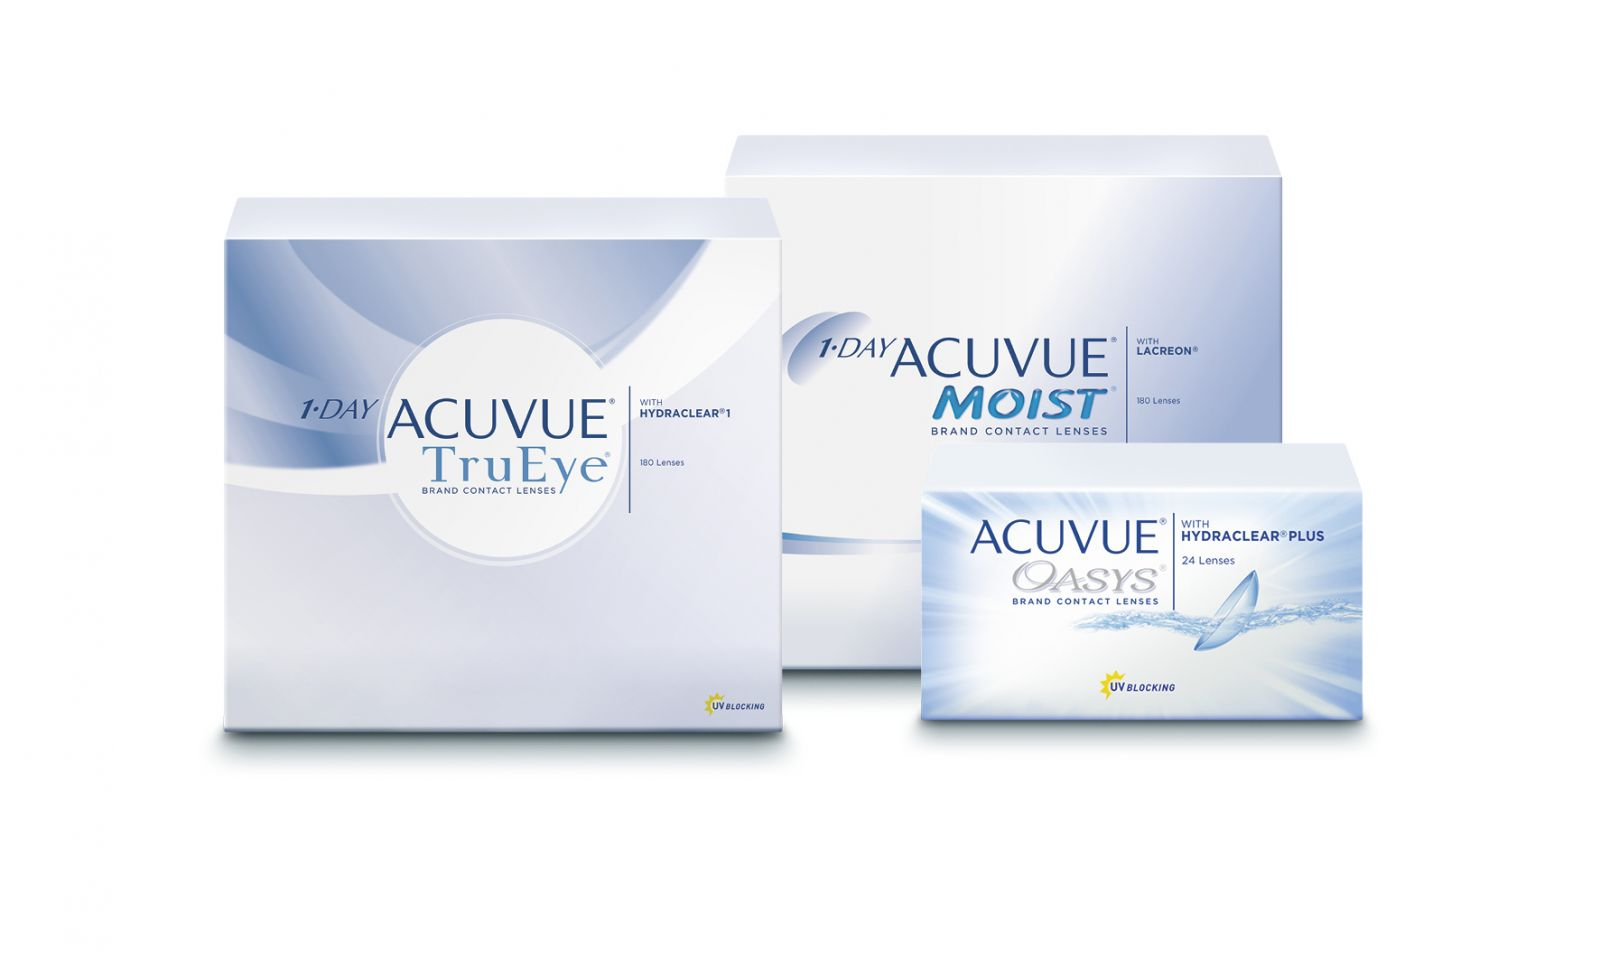 acuvue_vorteils-box_24er180er